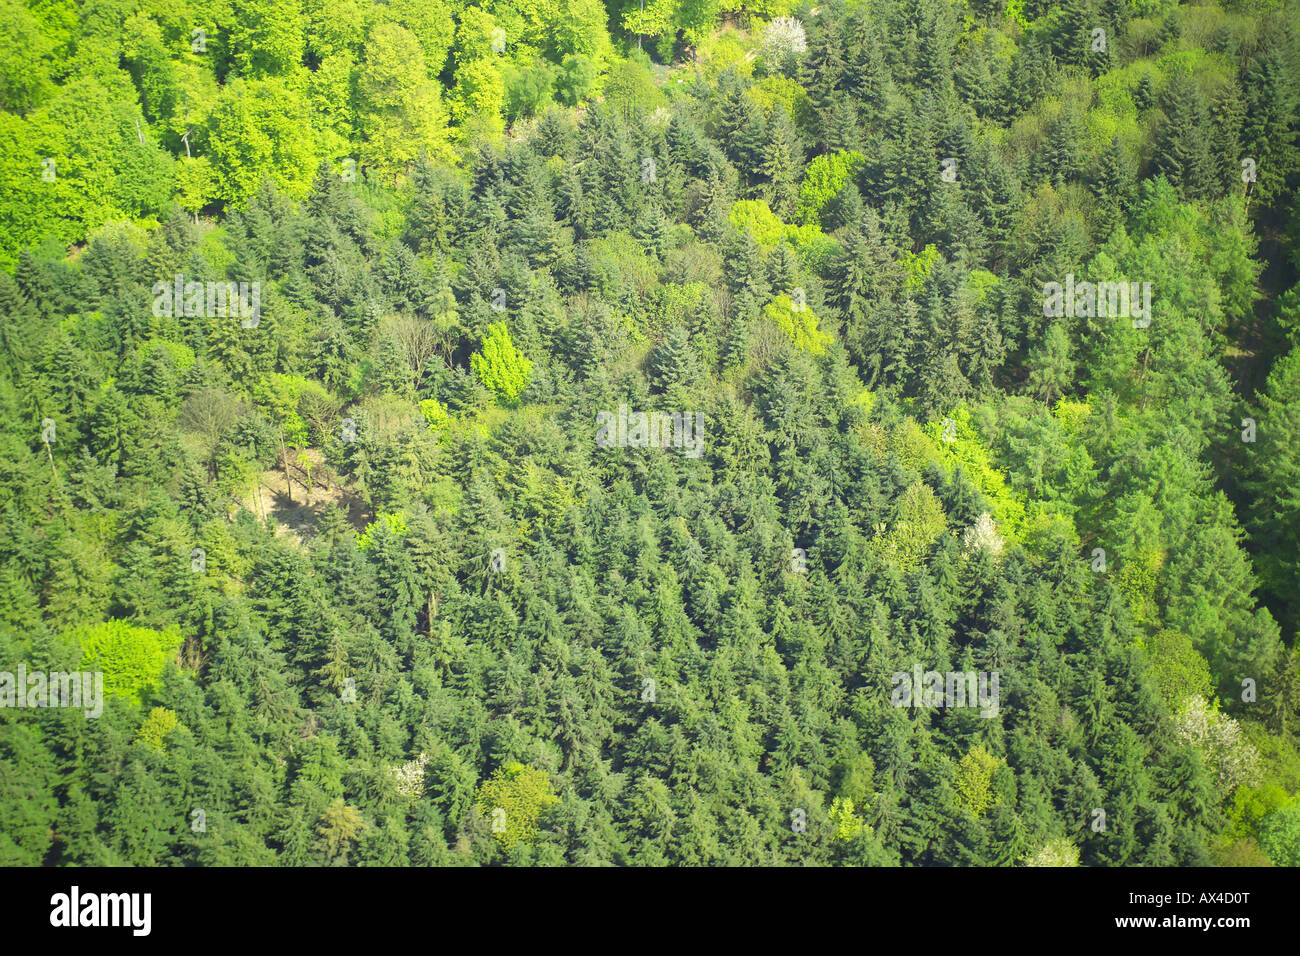 Aerial view of woodlands consisting of Deciduous and Coniferous Trees Stock Photo